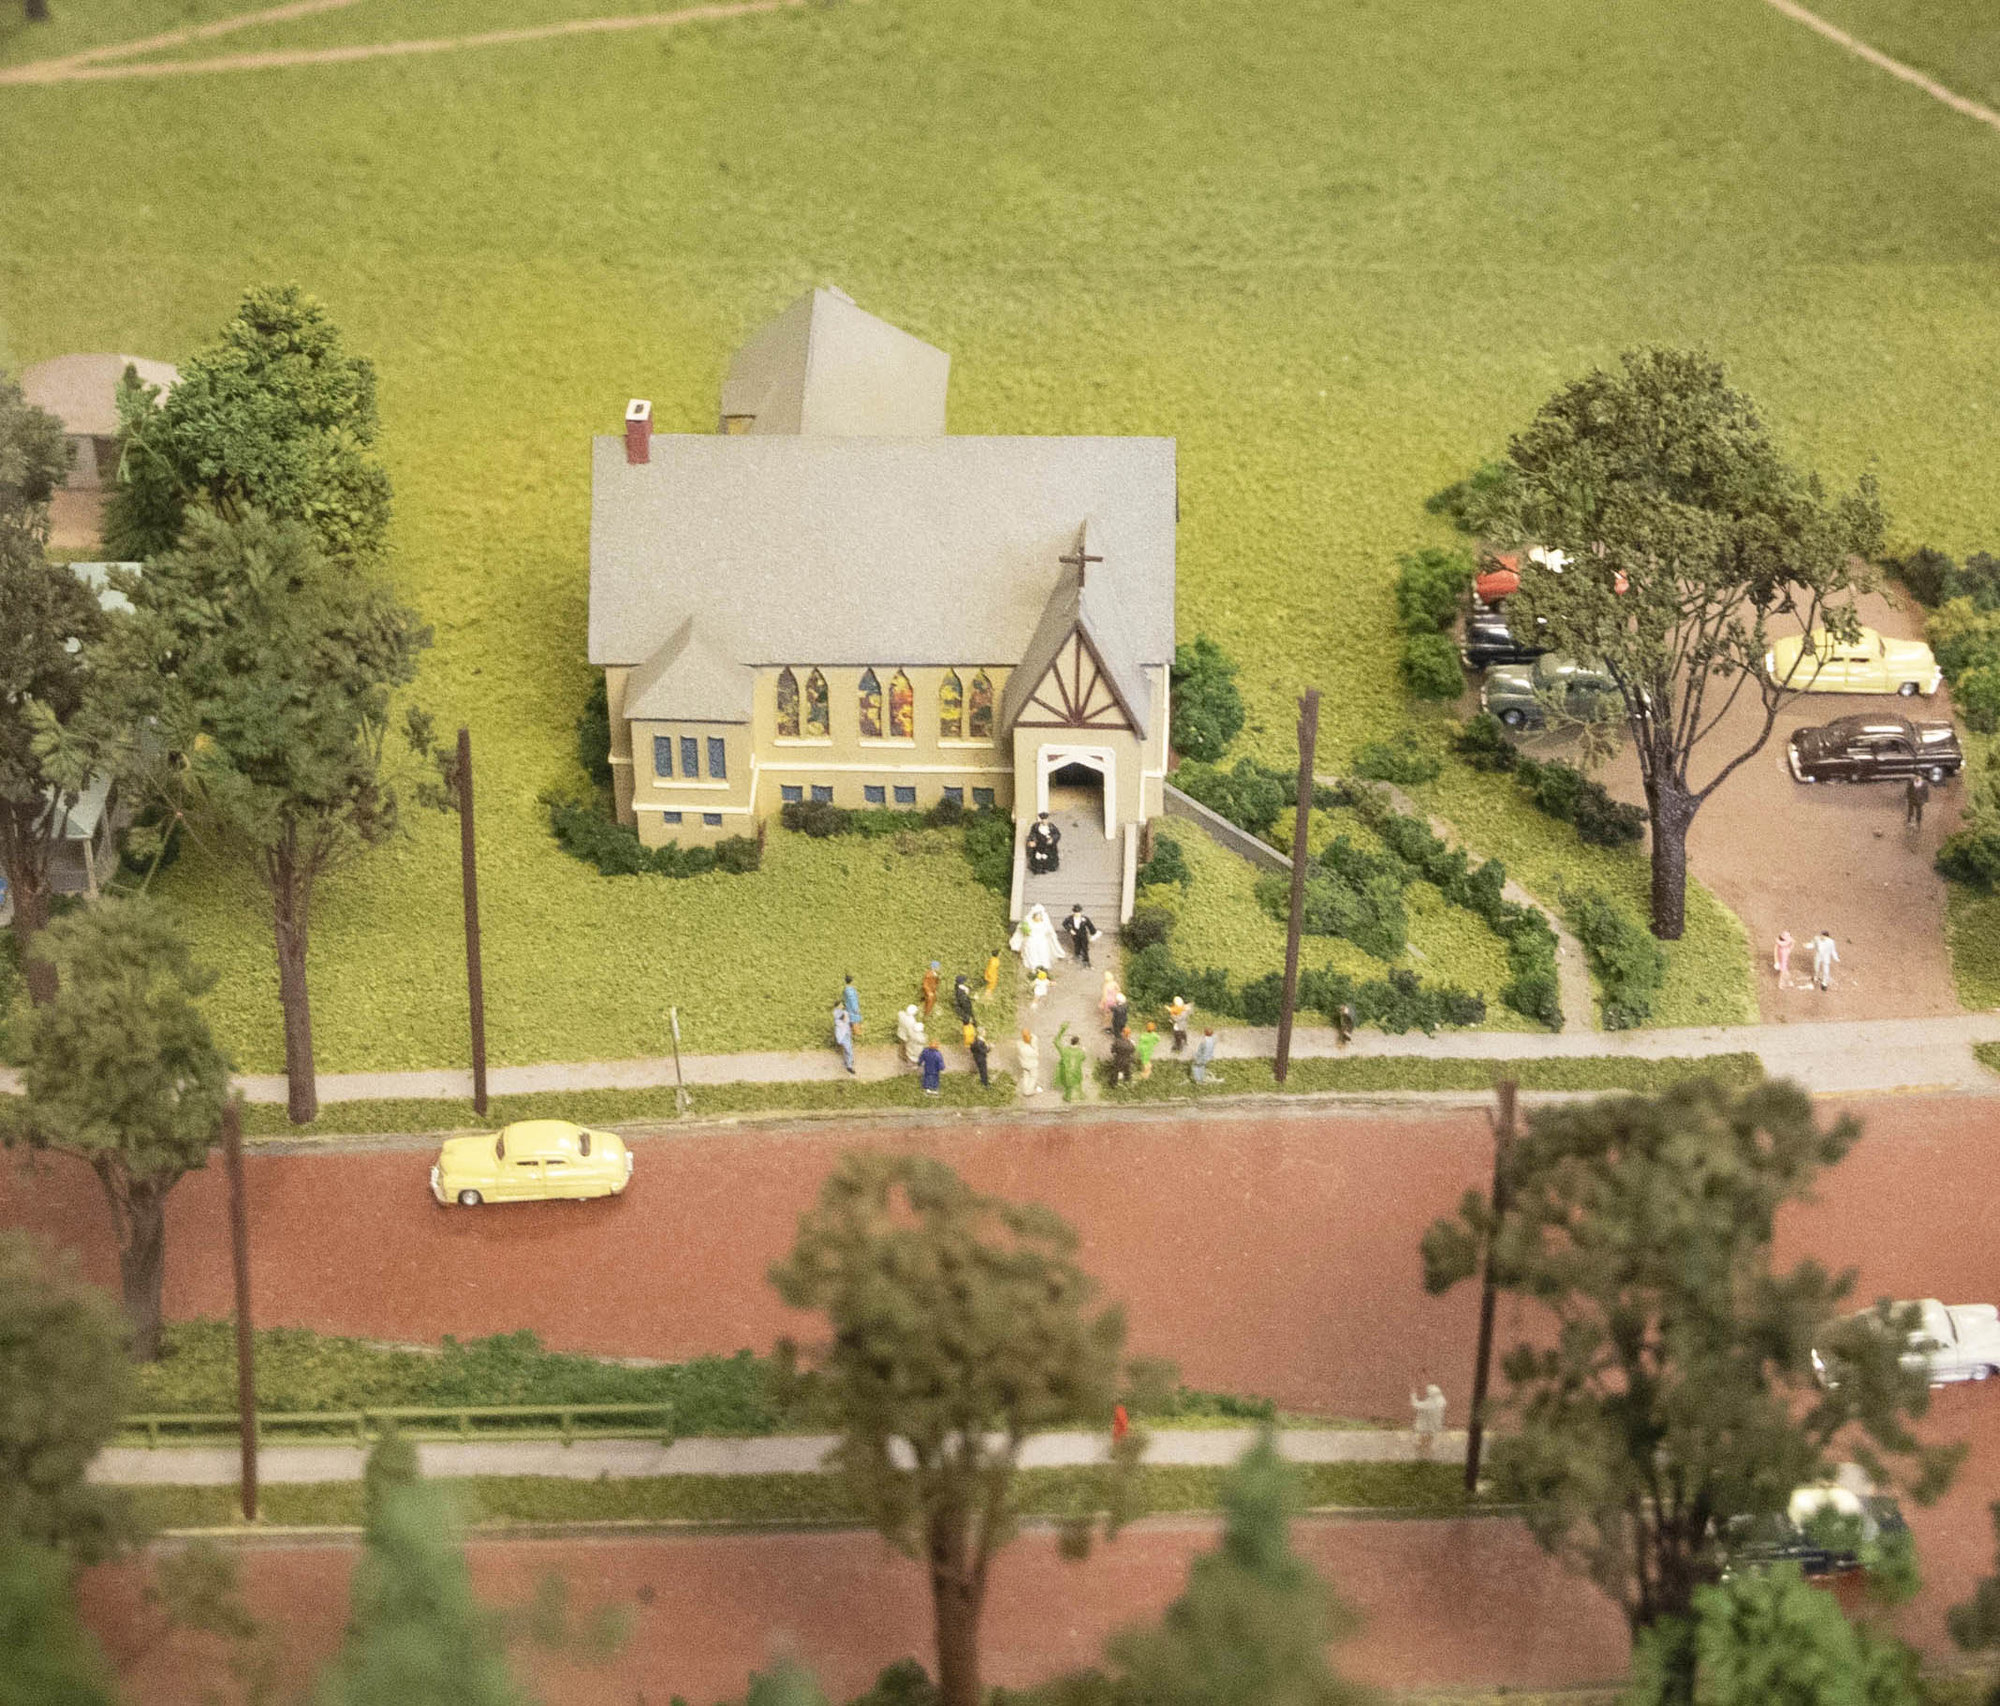 Back in 1960, the Beebe Chapel (above) was located at the current start of Cliff Street (Route 96). David Fogel recreated a wedding scene when crafting his model.